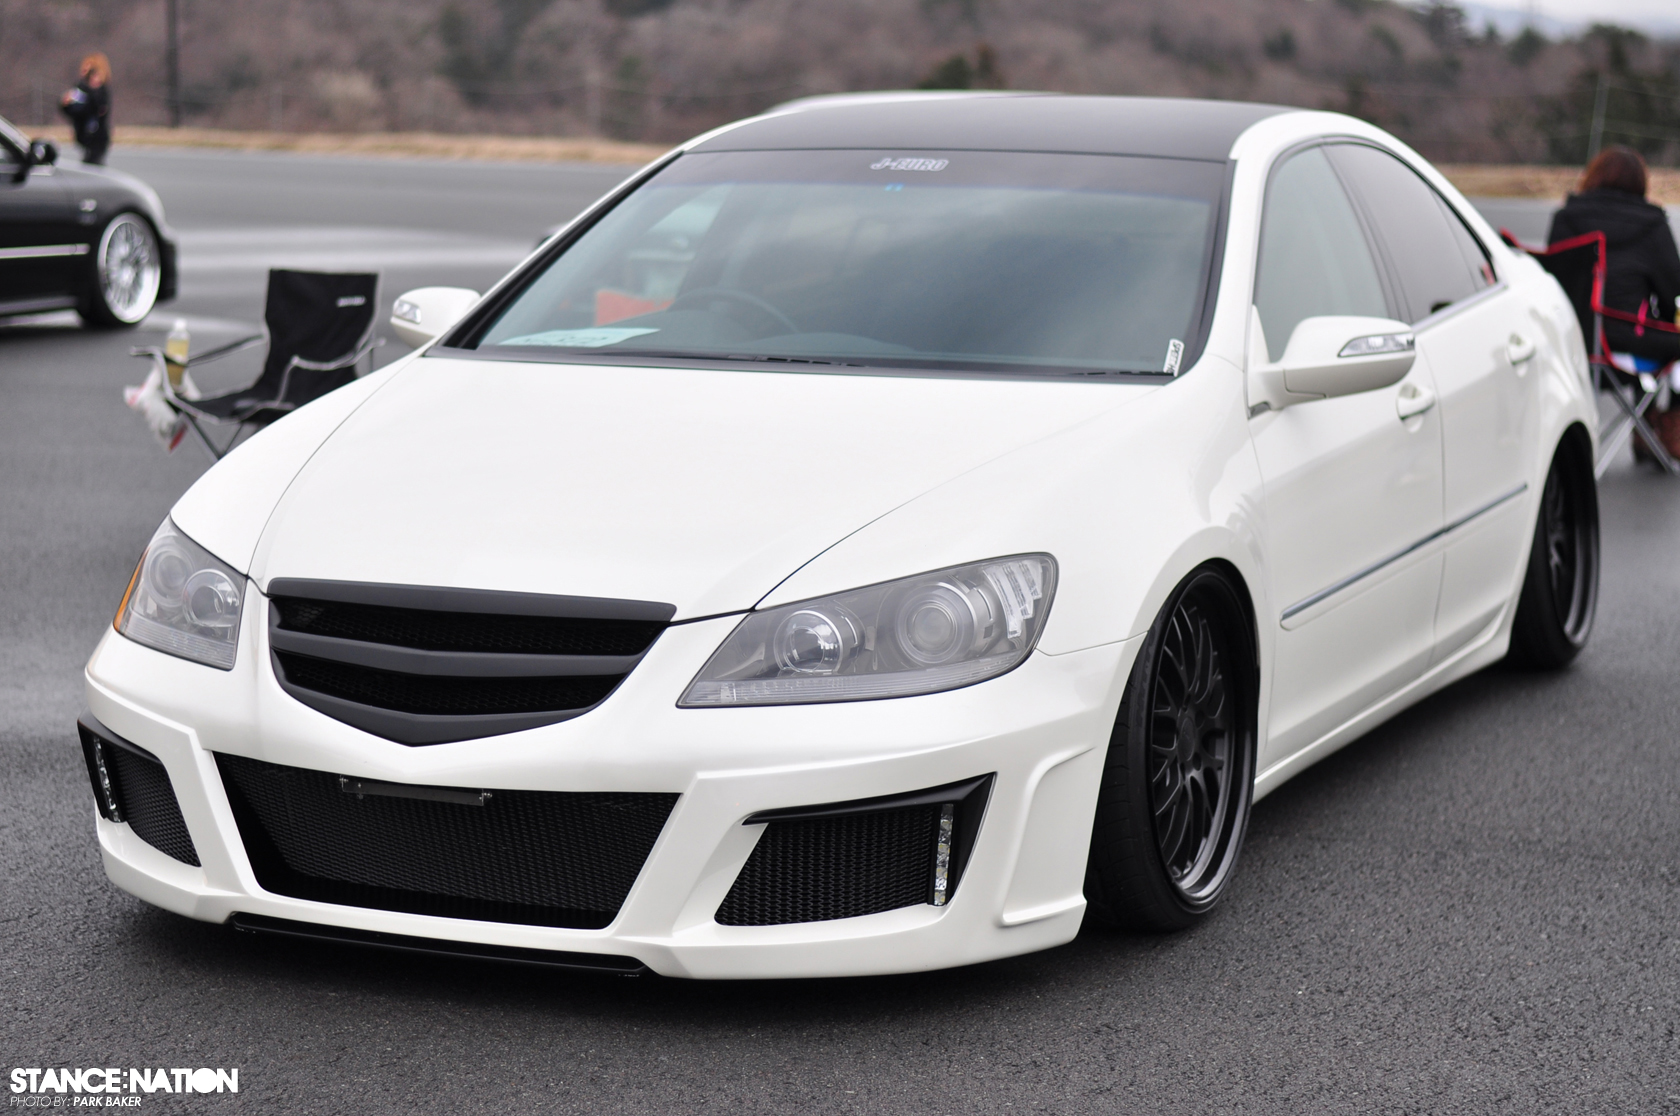 Acura RL Acura Rl Grill Acura Car Photos And Wallpapers - 2005 acura rl front grill